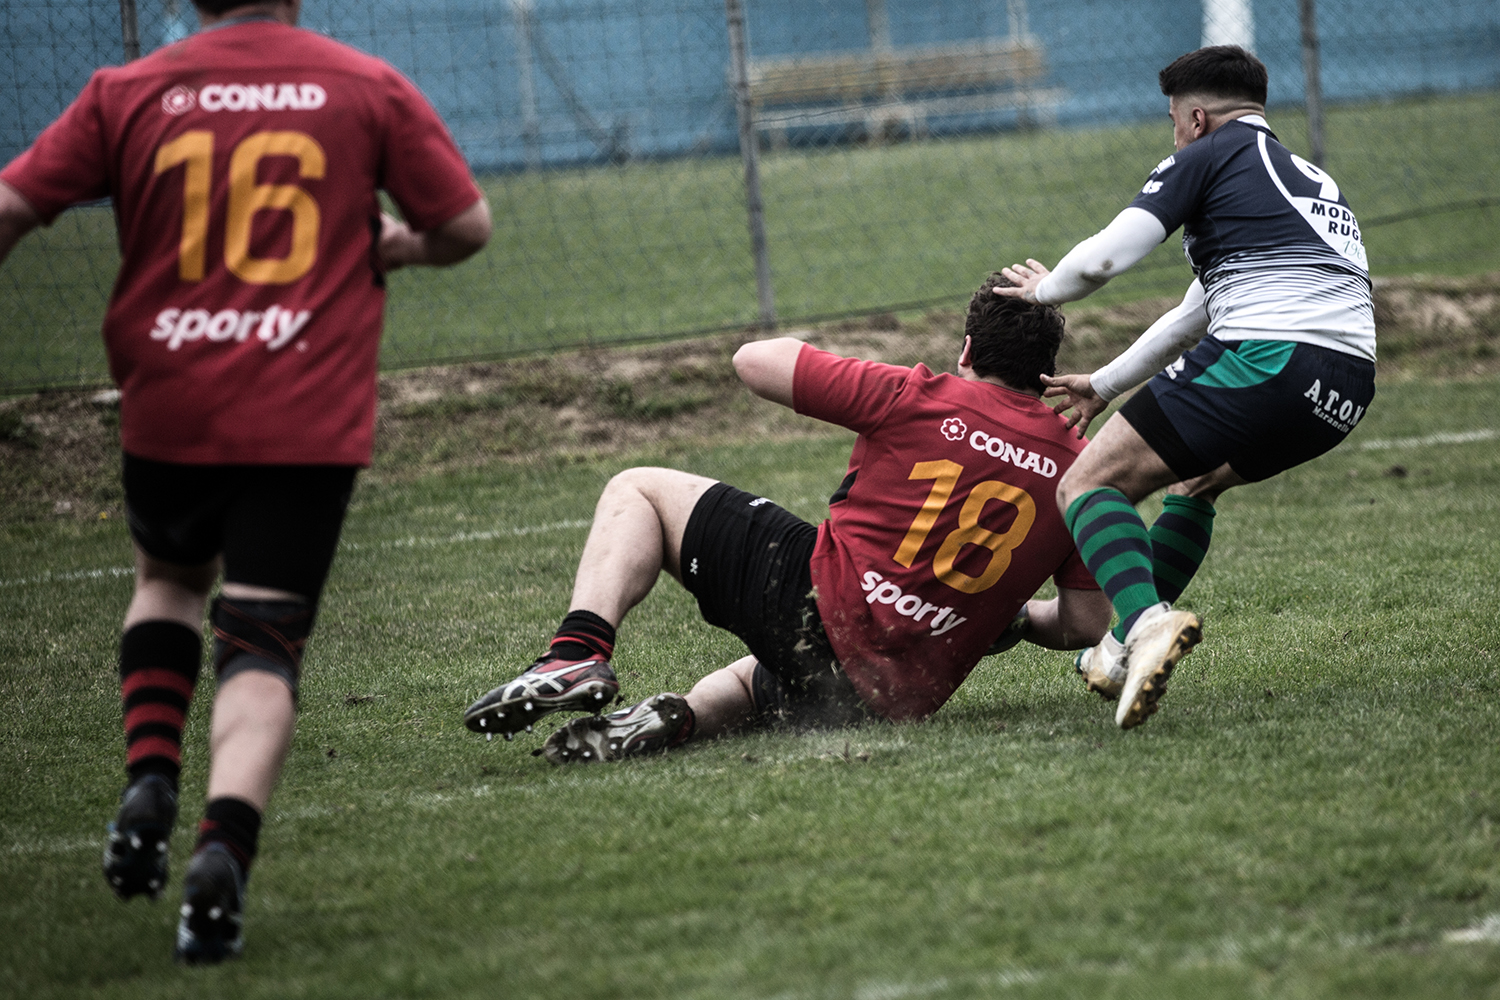 rugby_photograph_33.jpg